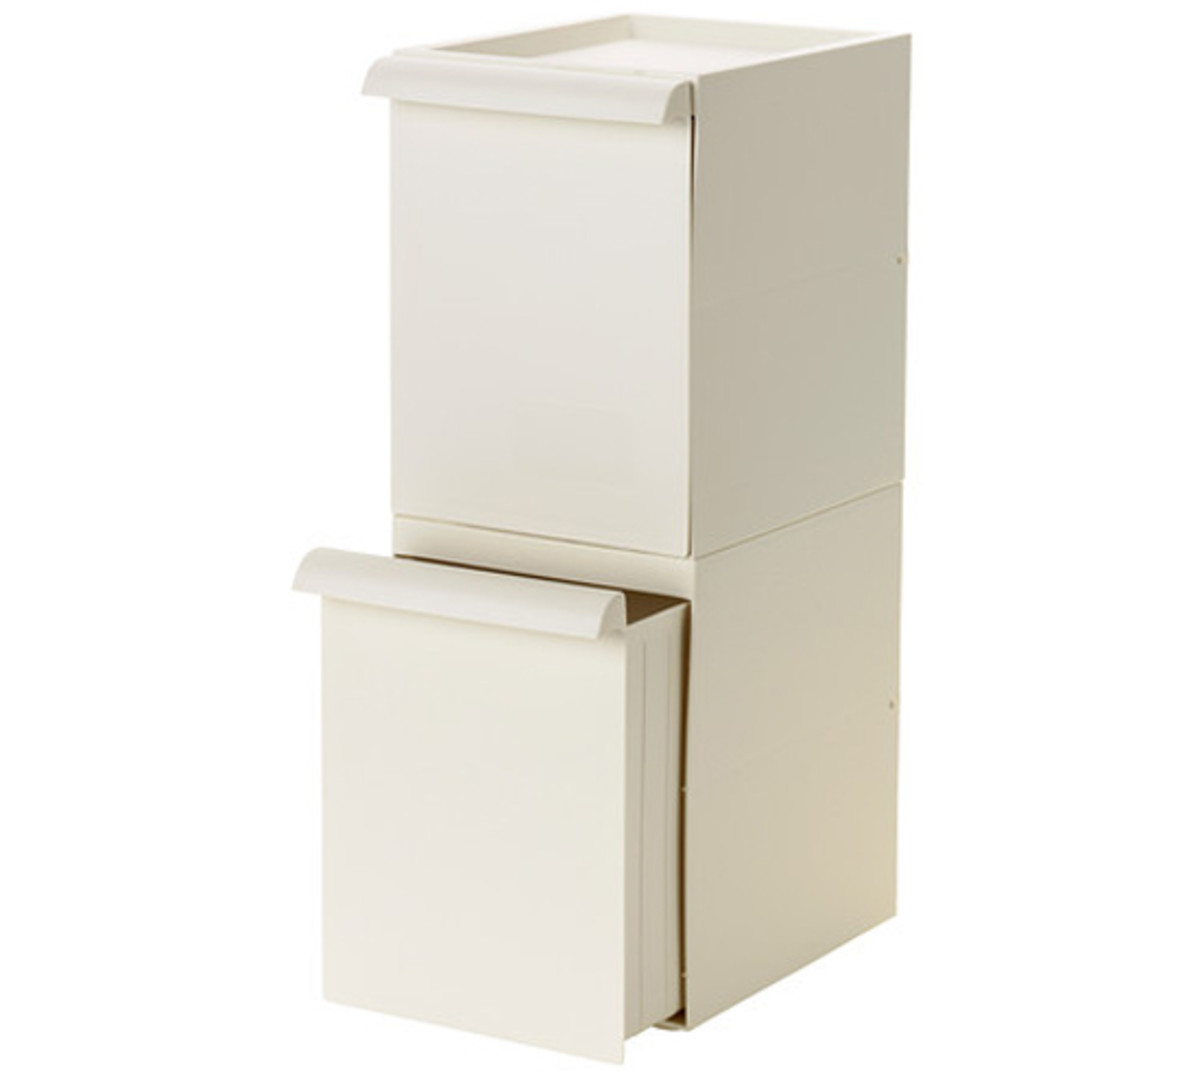 IKEA Retur Stackable Recycling Bin